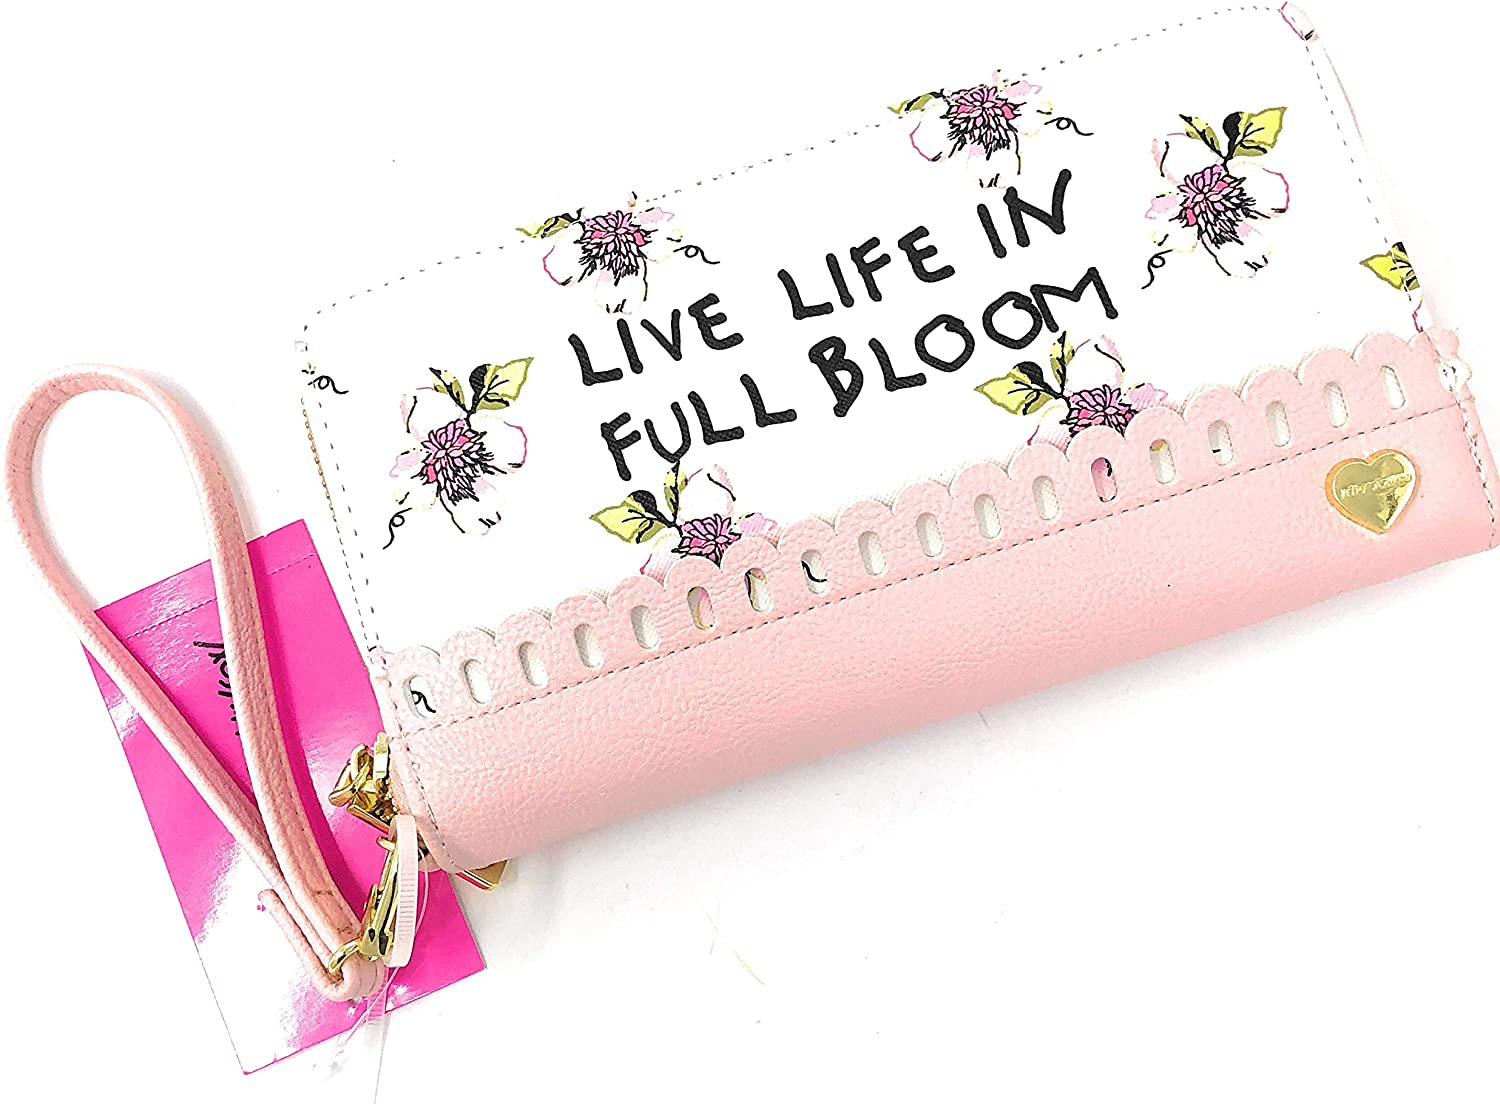 Betsey Johnson Cream Floral  Live Life in full Bloom  Zip Around Wallet   8 X 4.5 IN